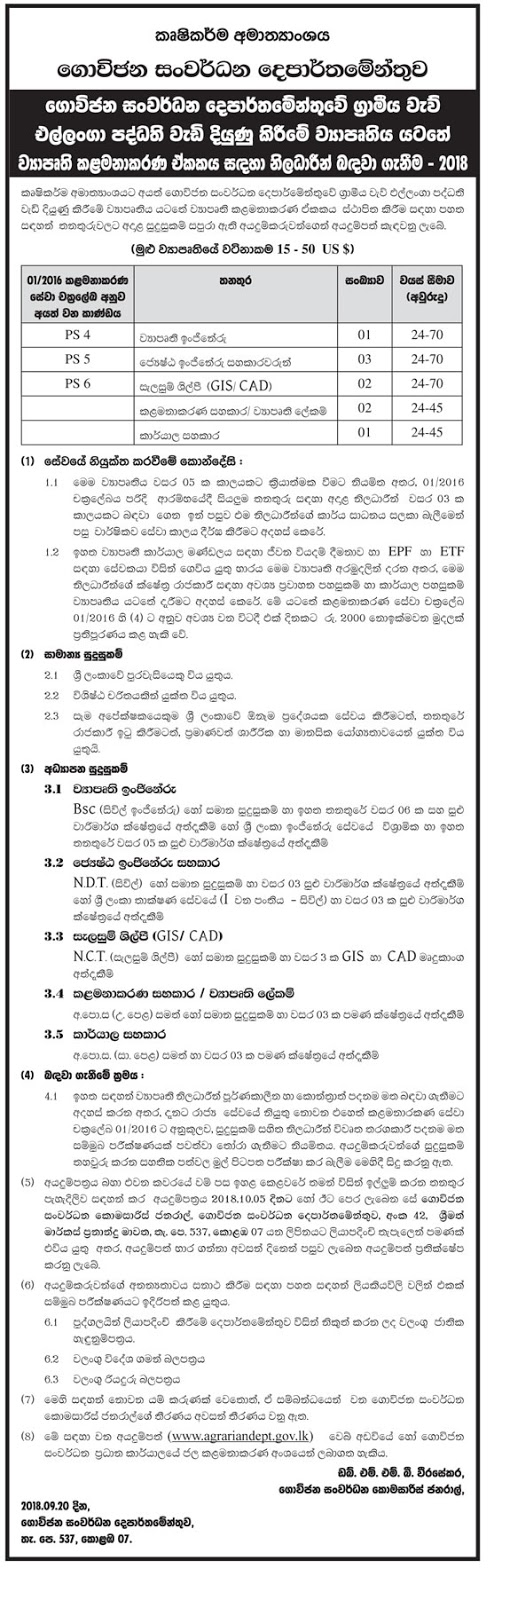 Vacancies at Department of Agrarian Development